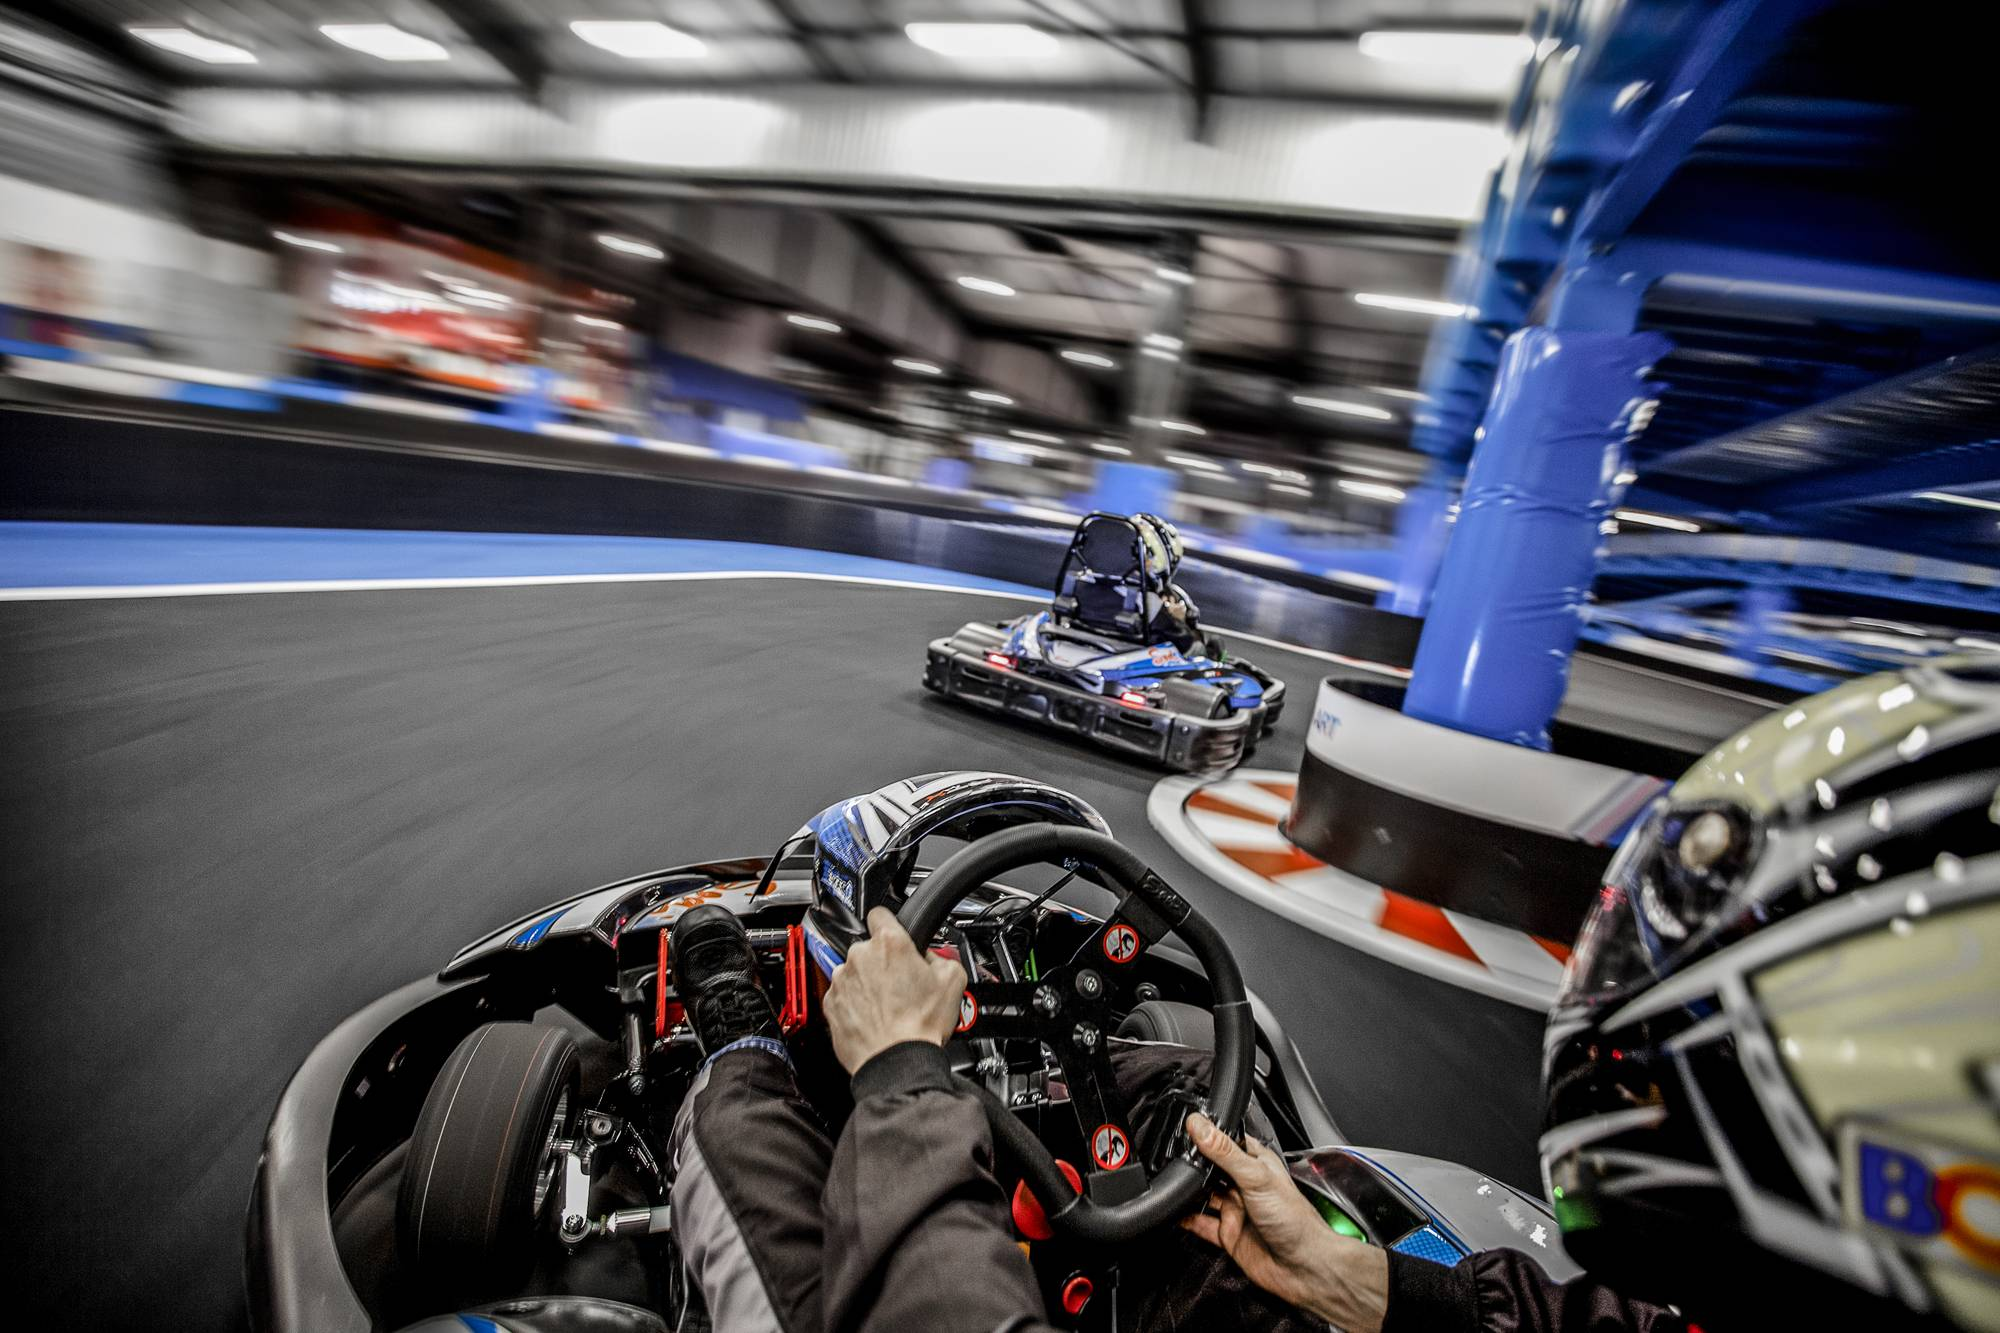 avantages du karting indoor sur le karting outdoor à lyon